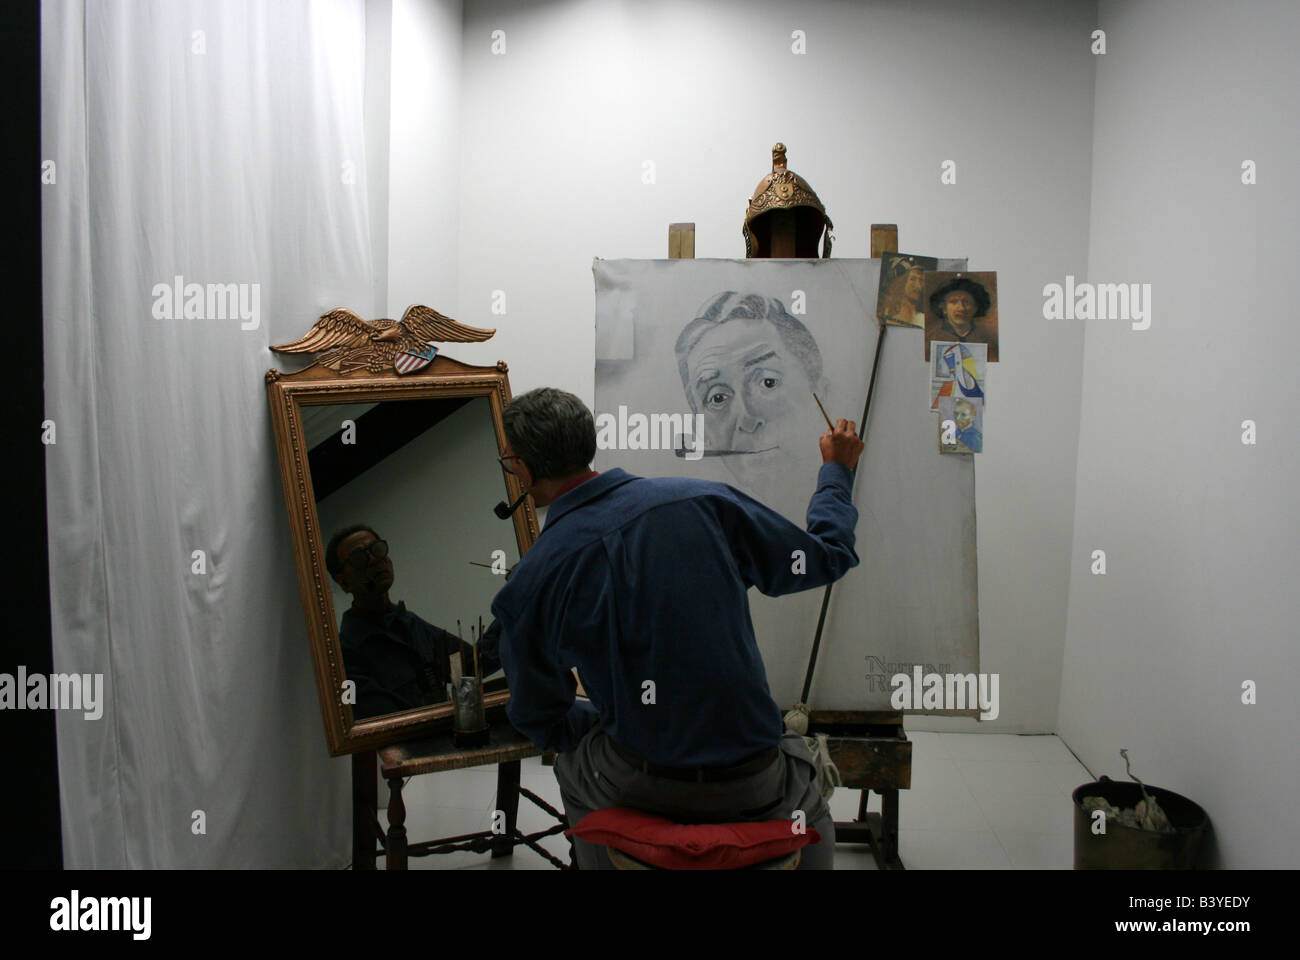 Wax recreation of Norman Rockwell doing a self portrait in mirror - Stock Image